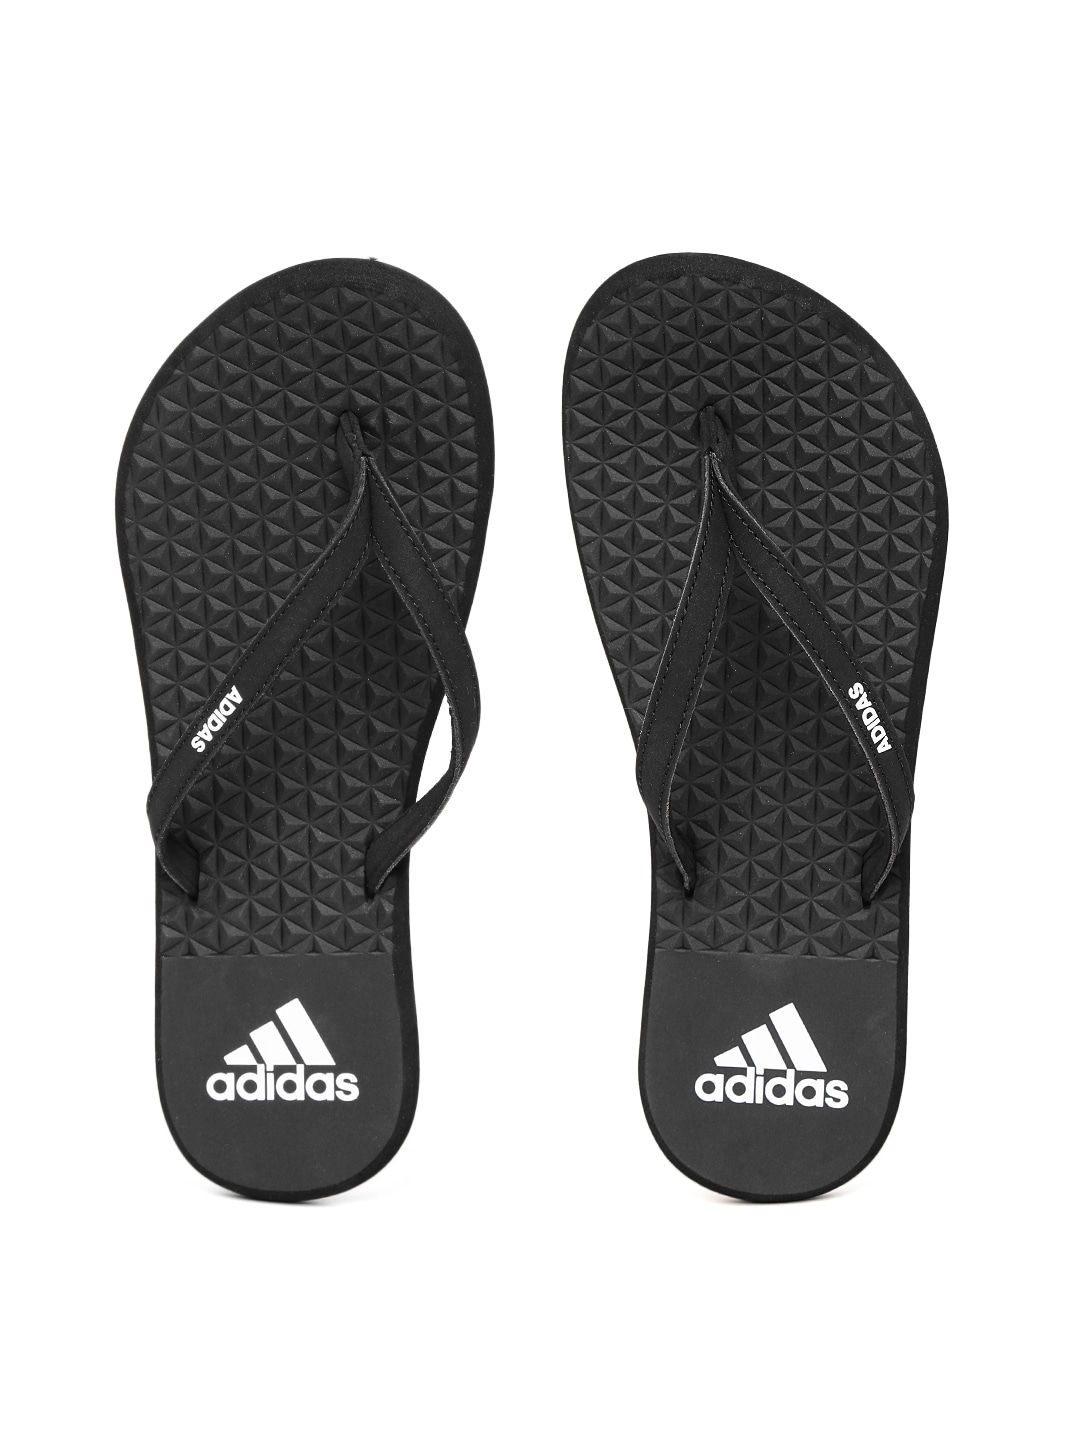 24fb35815d34e8 Women s Adidas Flip Flops - Buy Adidas Flip Flops for Women Online in India